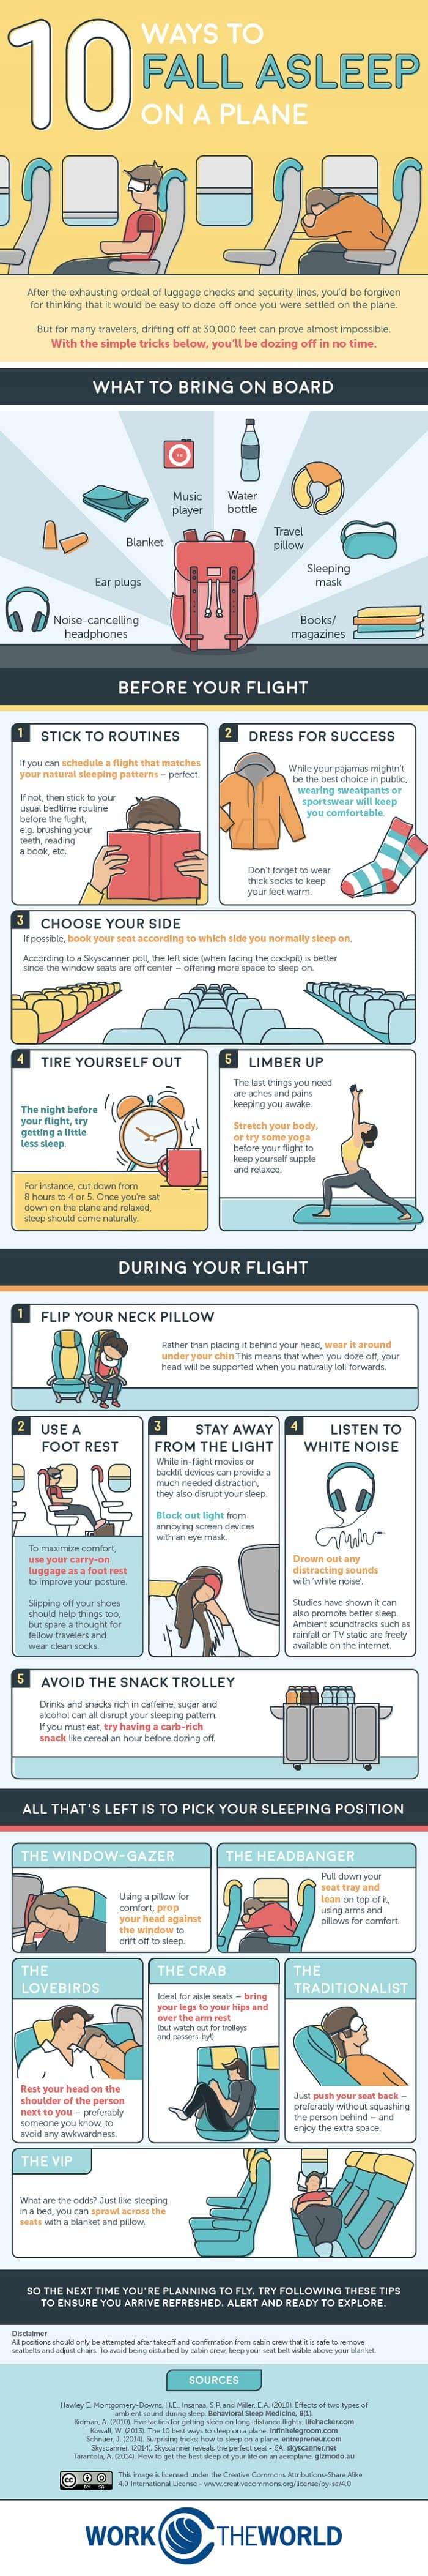 What To Give A Dog To Sleep On A Plane